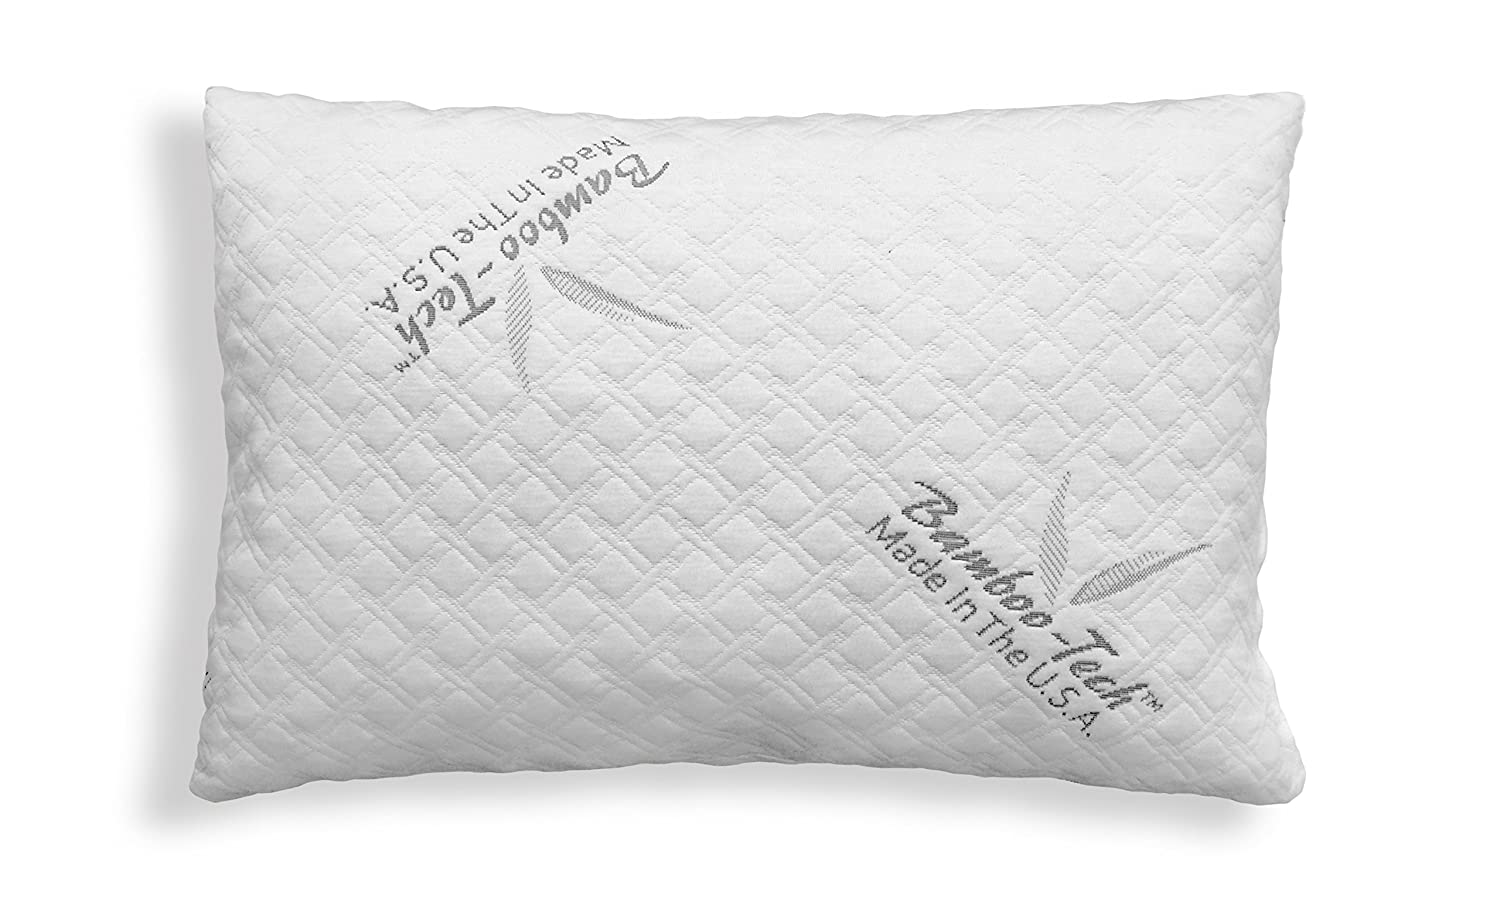 Restwel Bamboo Pillow Memory Foam, Sleep Better, Relief For Neck Pain Or Migraine Headaches! Sleep Aid Stay Cool Hypoallergenic Pillow. Stay Asleep Wake Up Rested, Made In USA